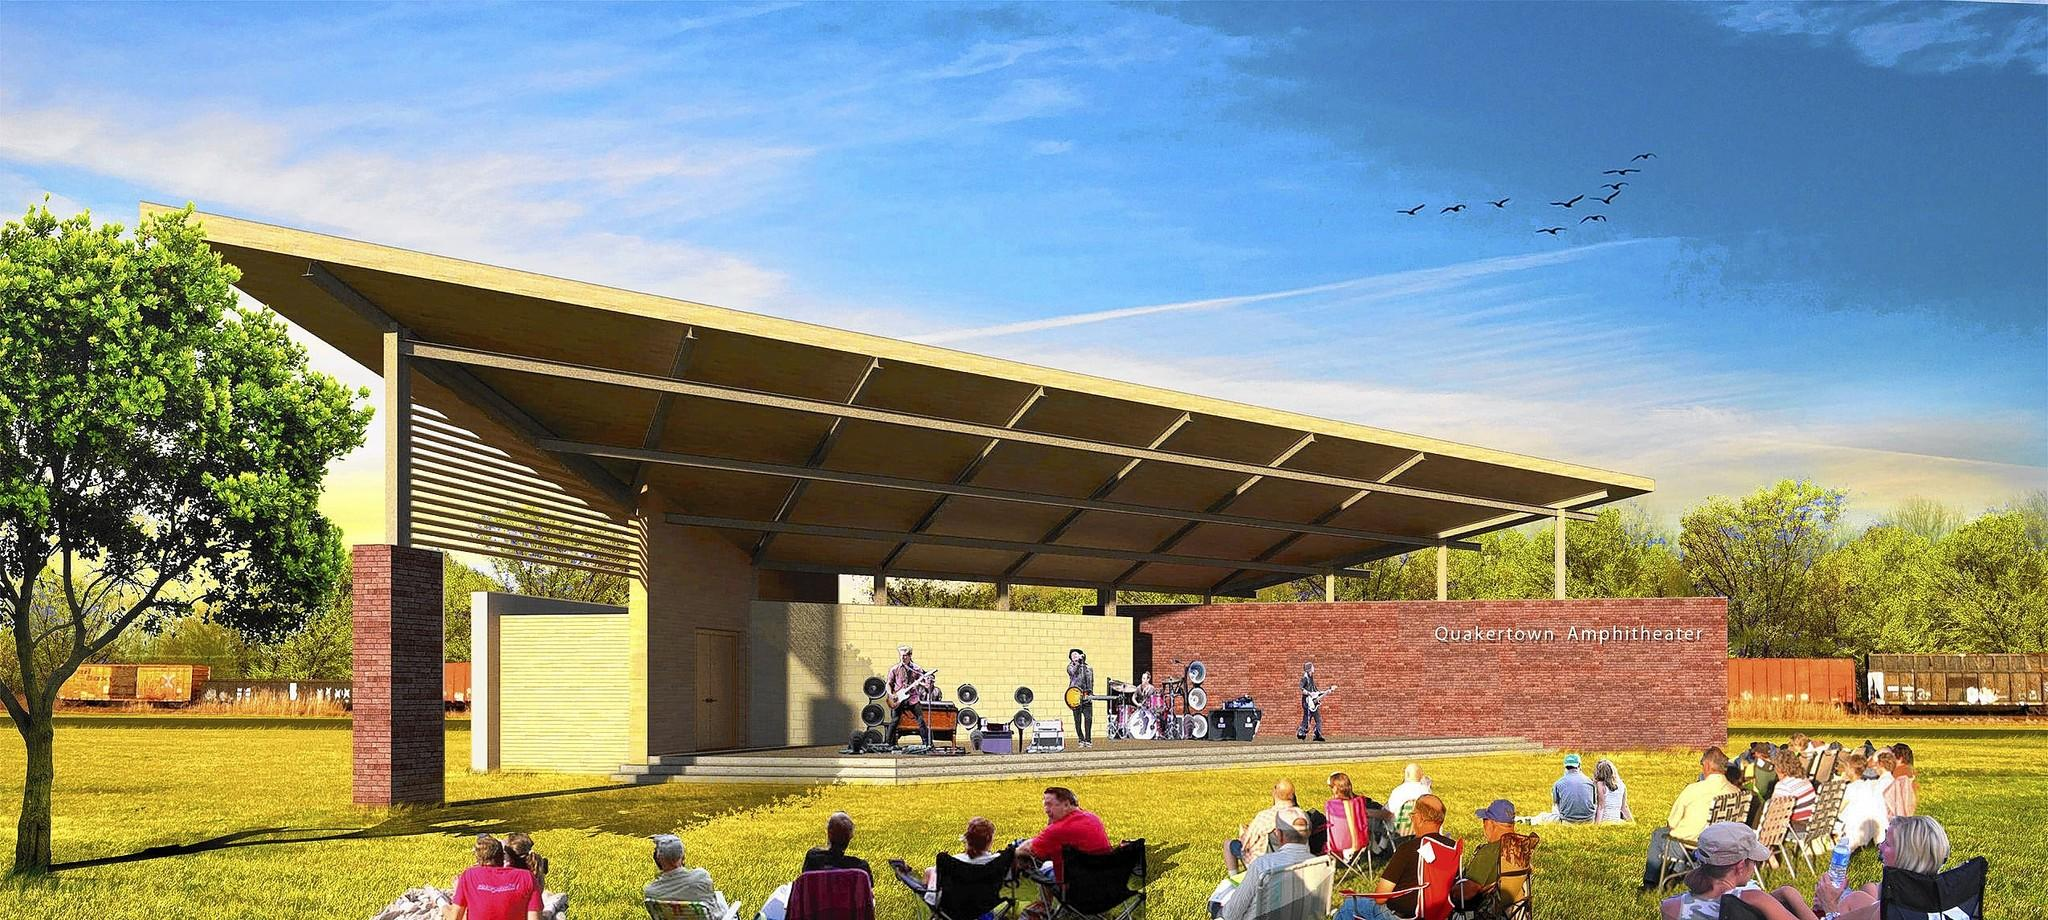 Quakertown is turning the site of the former Krupp Foundry into a park. Plans include building an amphitheater, shown here in a rendering.